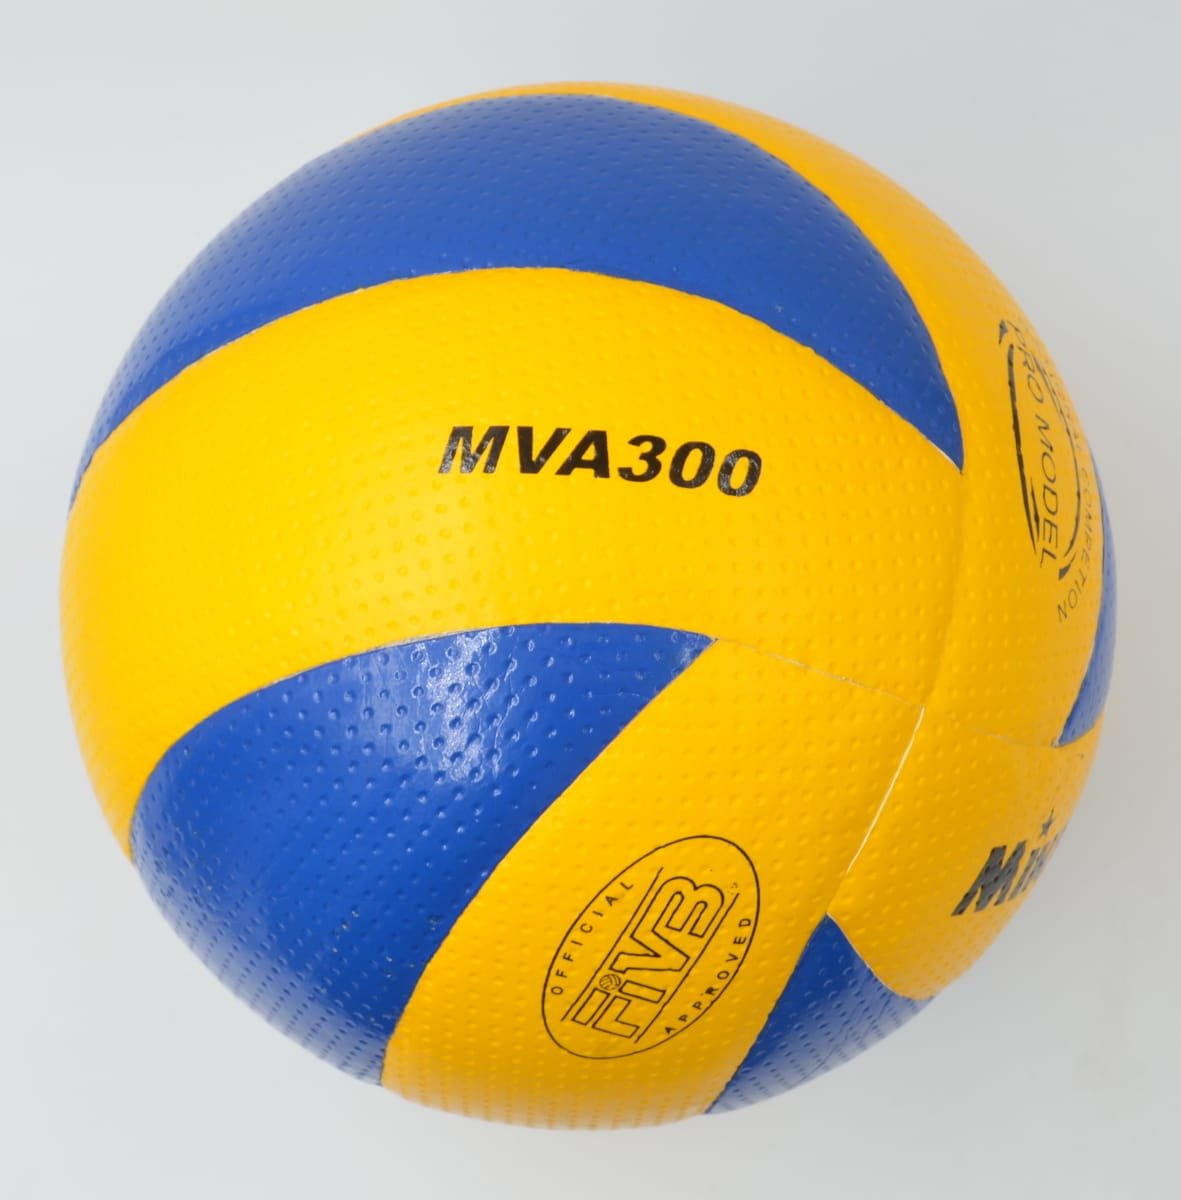 MIKASA MVA300 Official FIVB Approved Volleyball Indoor Game Ball size 5